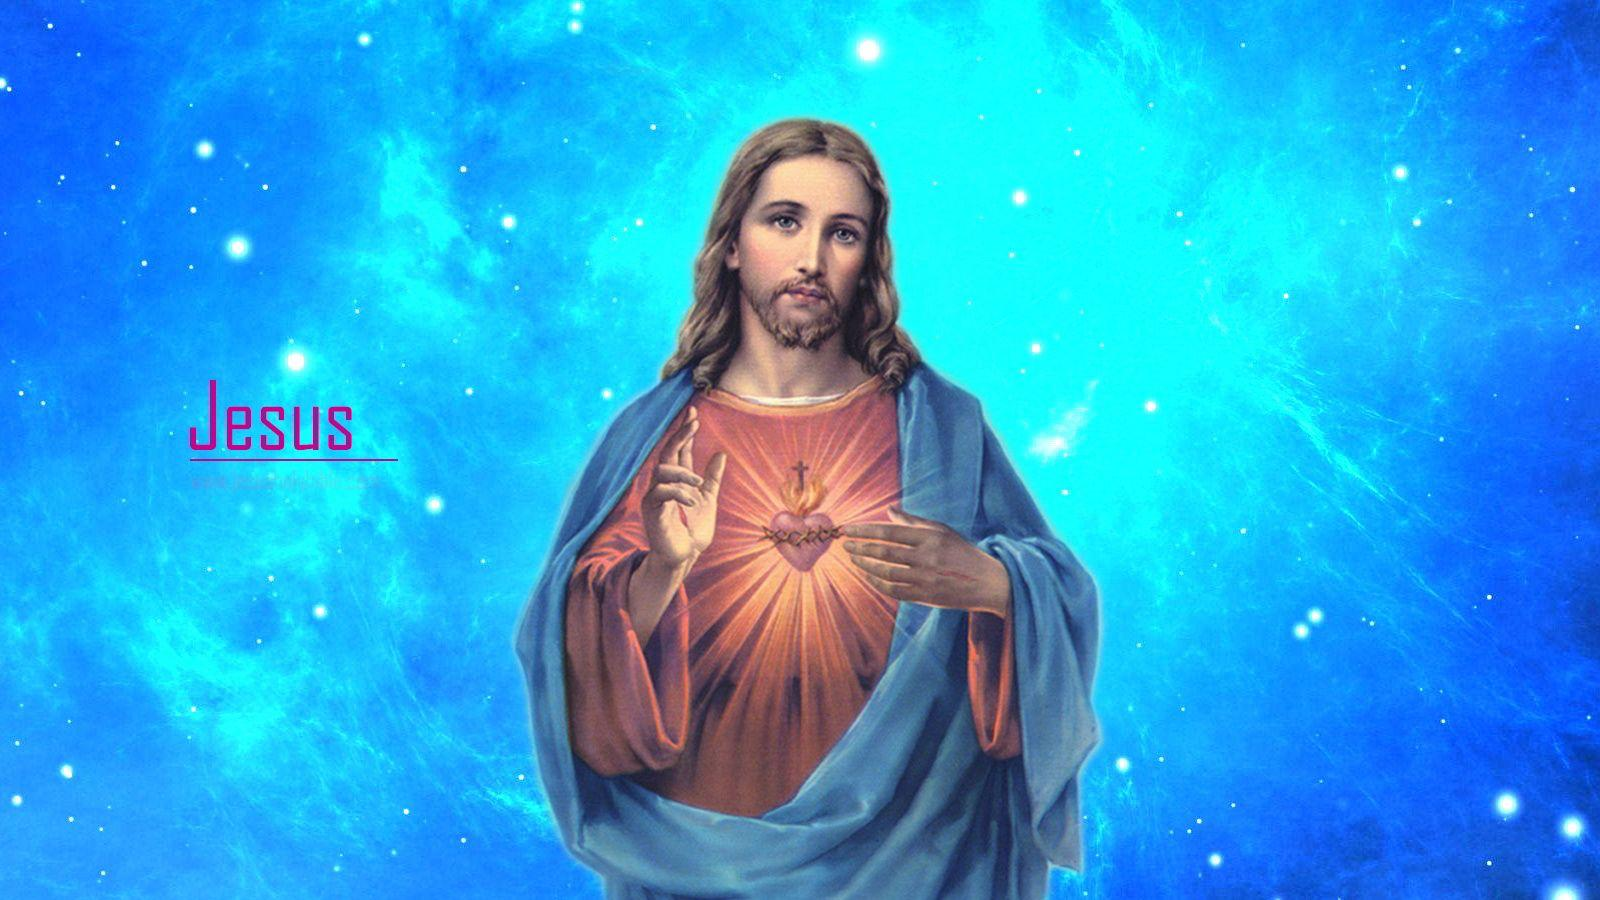 Jesus christ photos with messages Community of Christ - Wikipedia